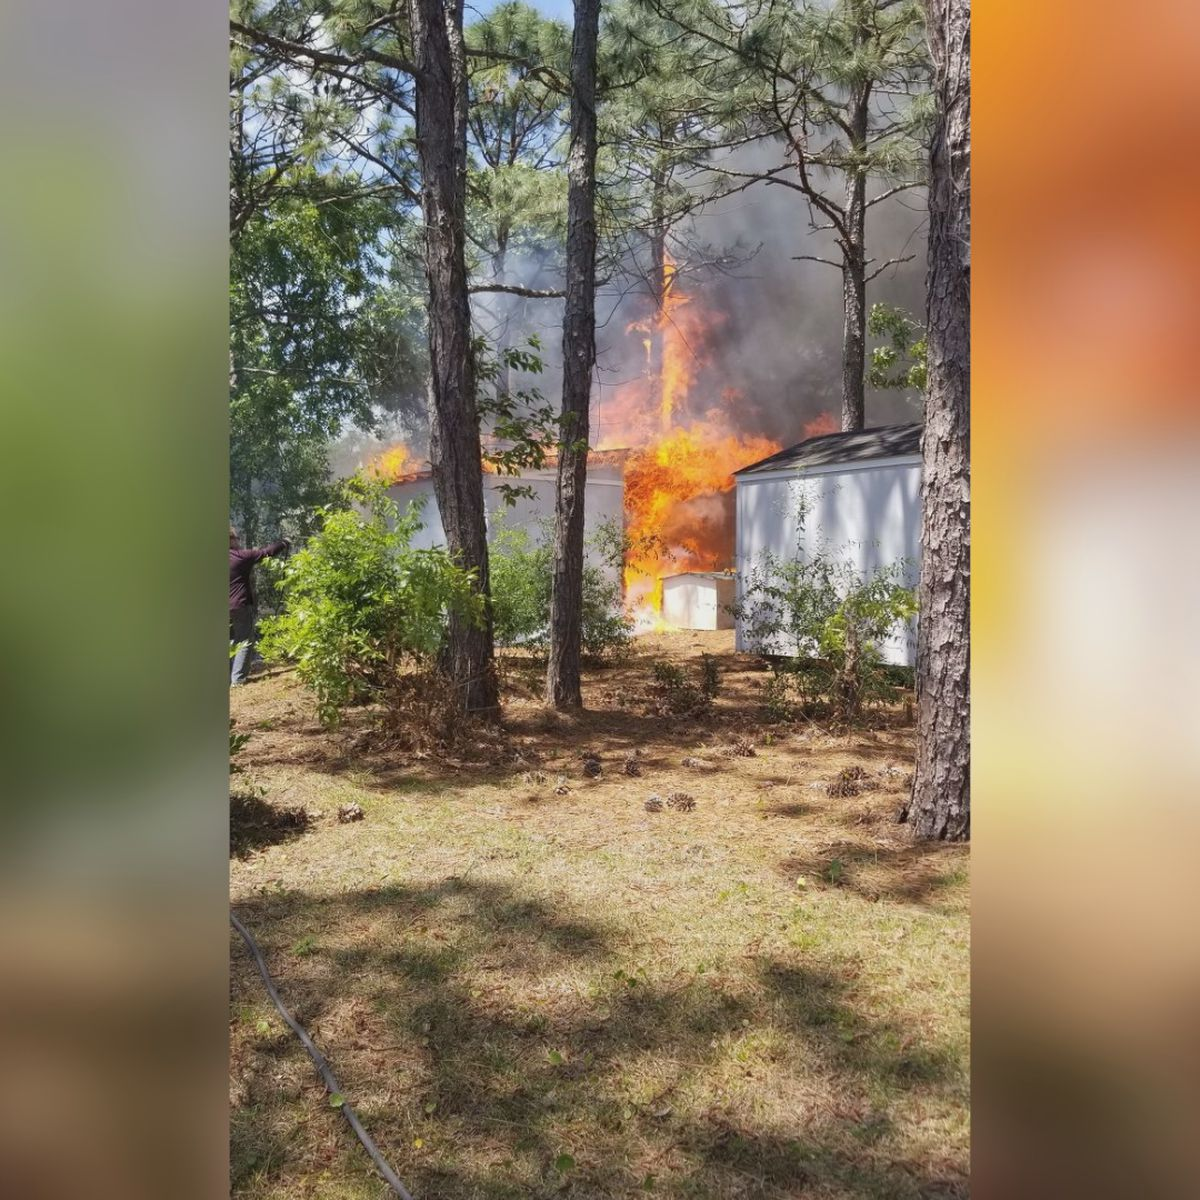 Crews respond to shed fire in New Hanover County